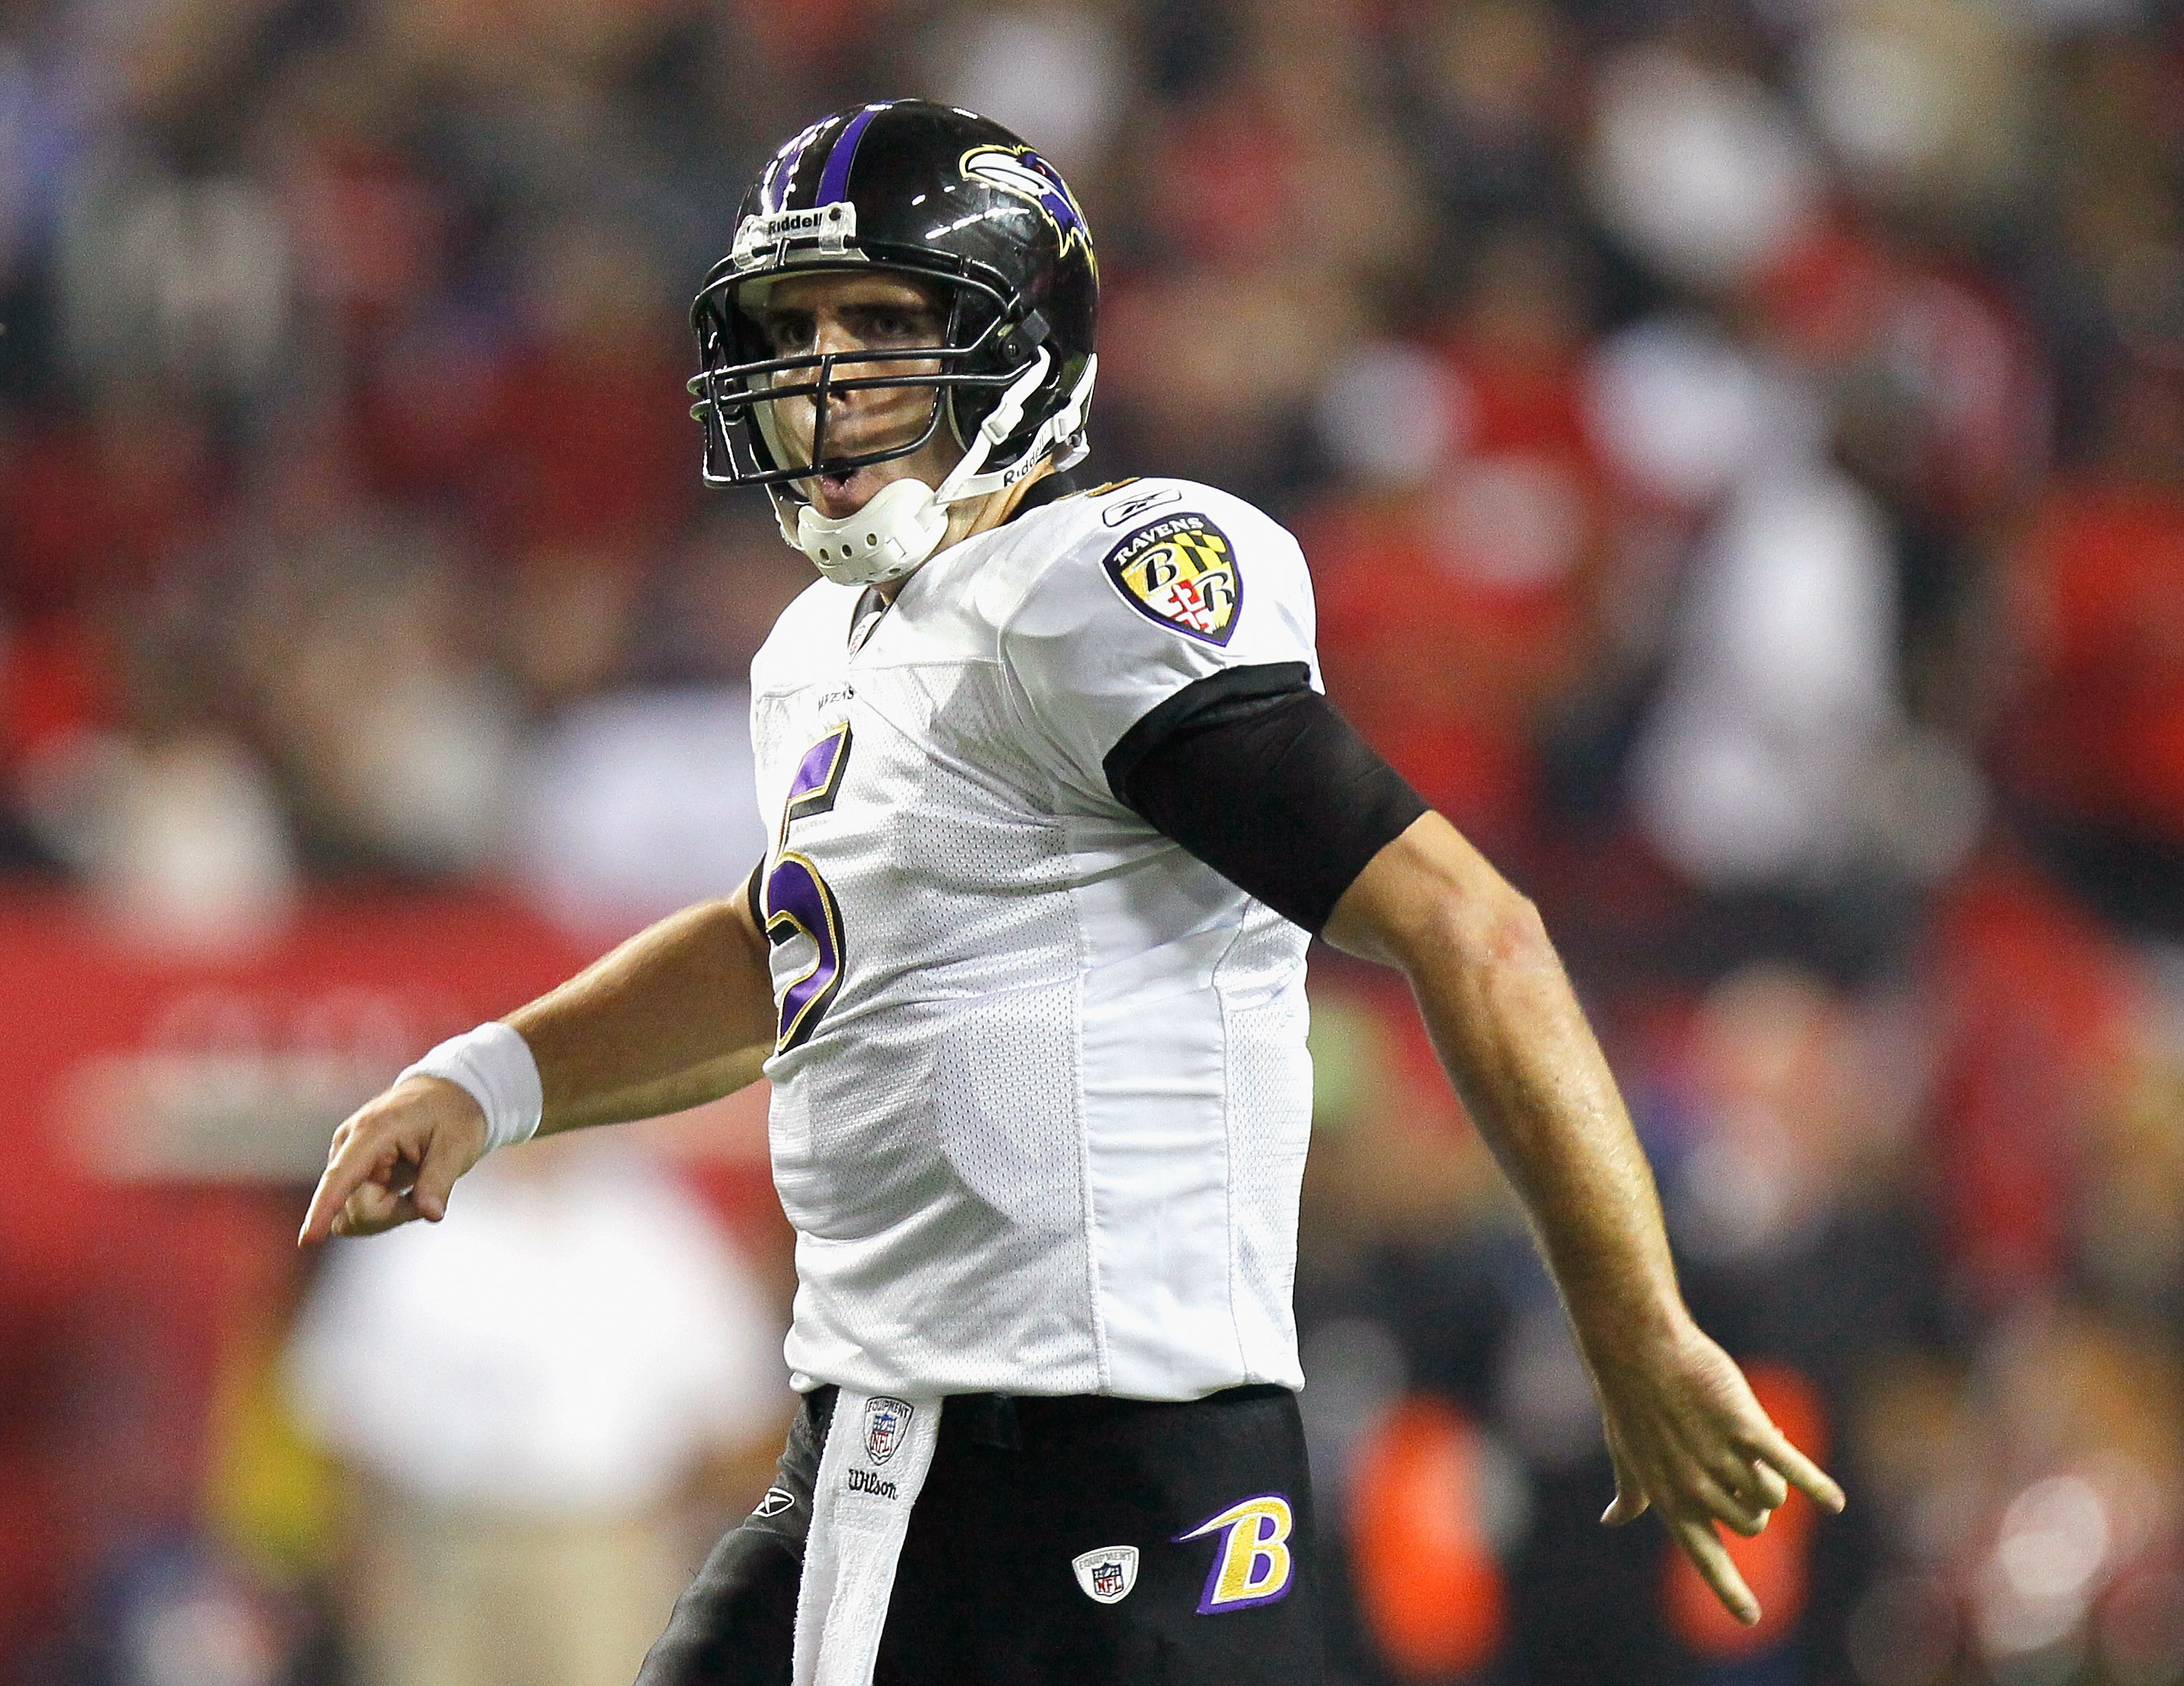 ATLANTA - NOVEMBER 11:  Quarterback Joe Flacco #5 of the Baltimore Ravens reacts after tossing a touchdown reception against the Atlanta Falcons at Georgia Dome on November 11, 2010 in Atlanta, Georgia.  (Photo by Kevin C. Cox/Getty Images)